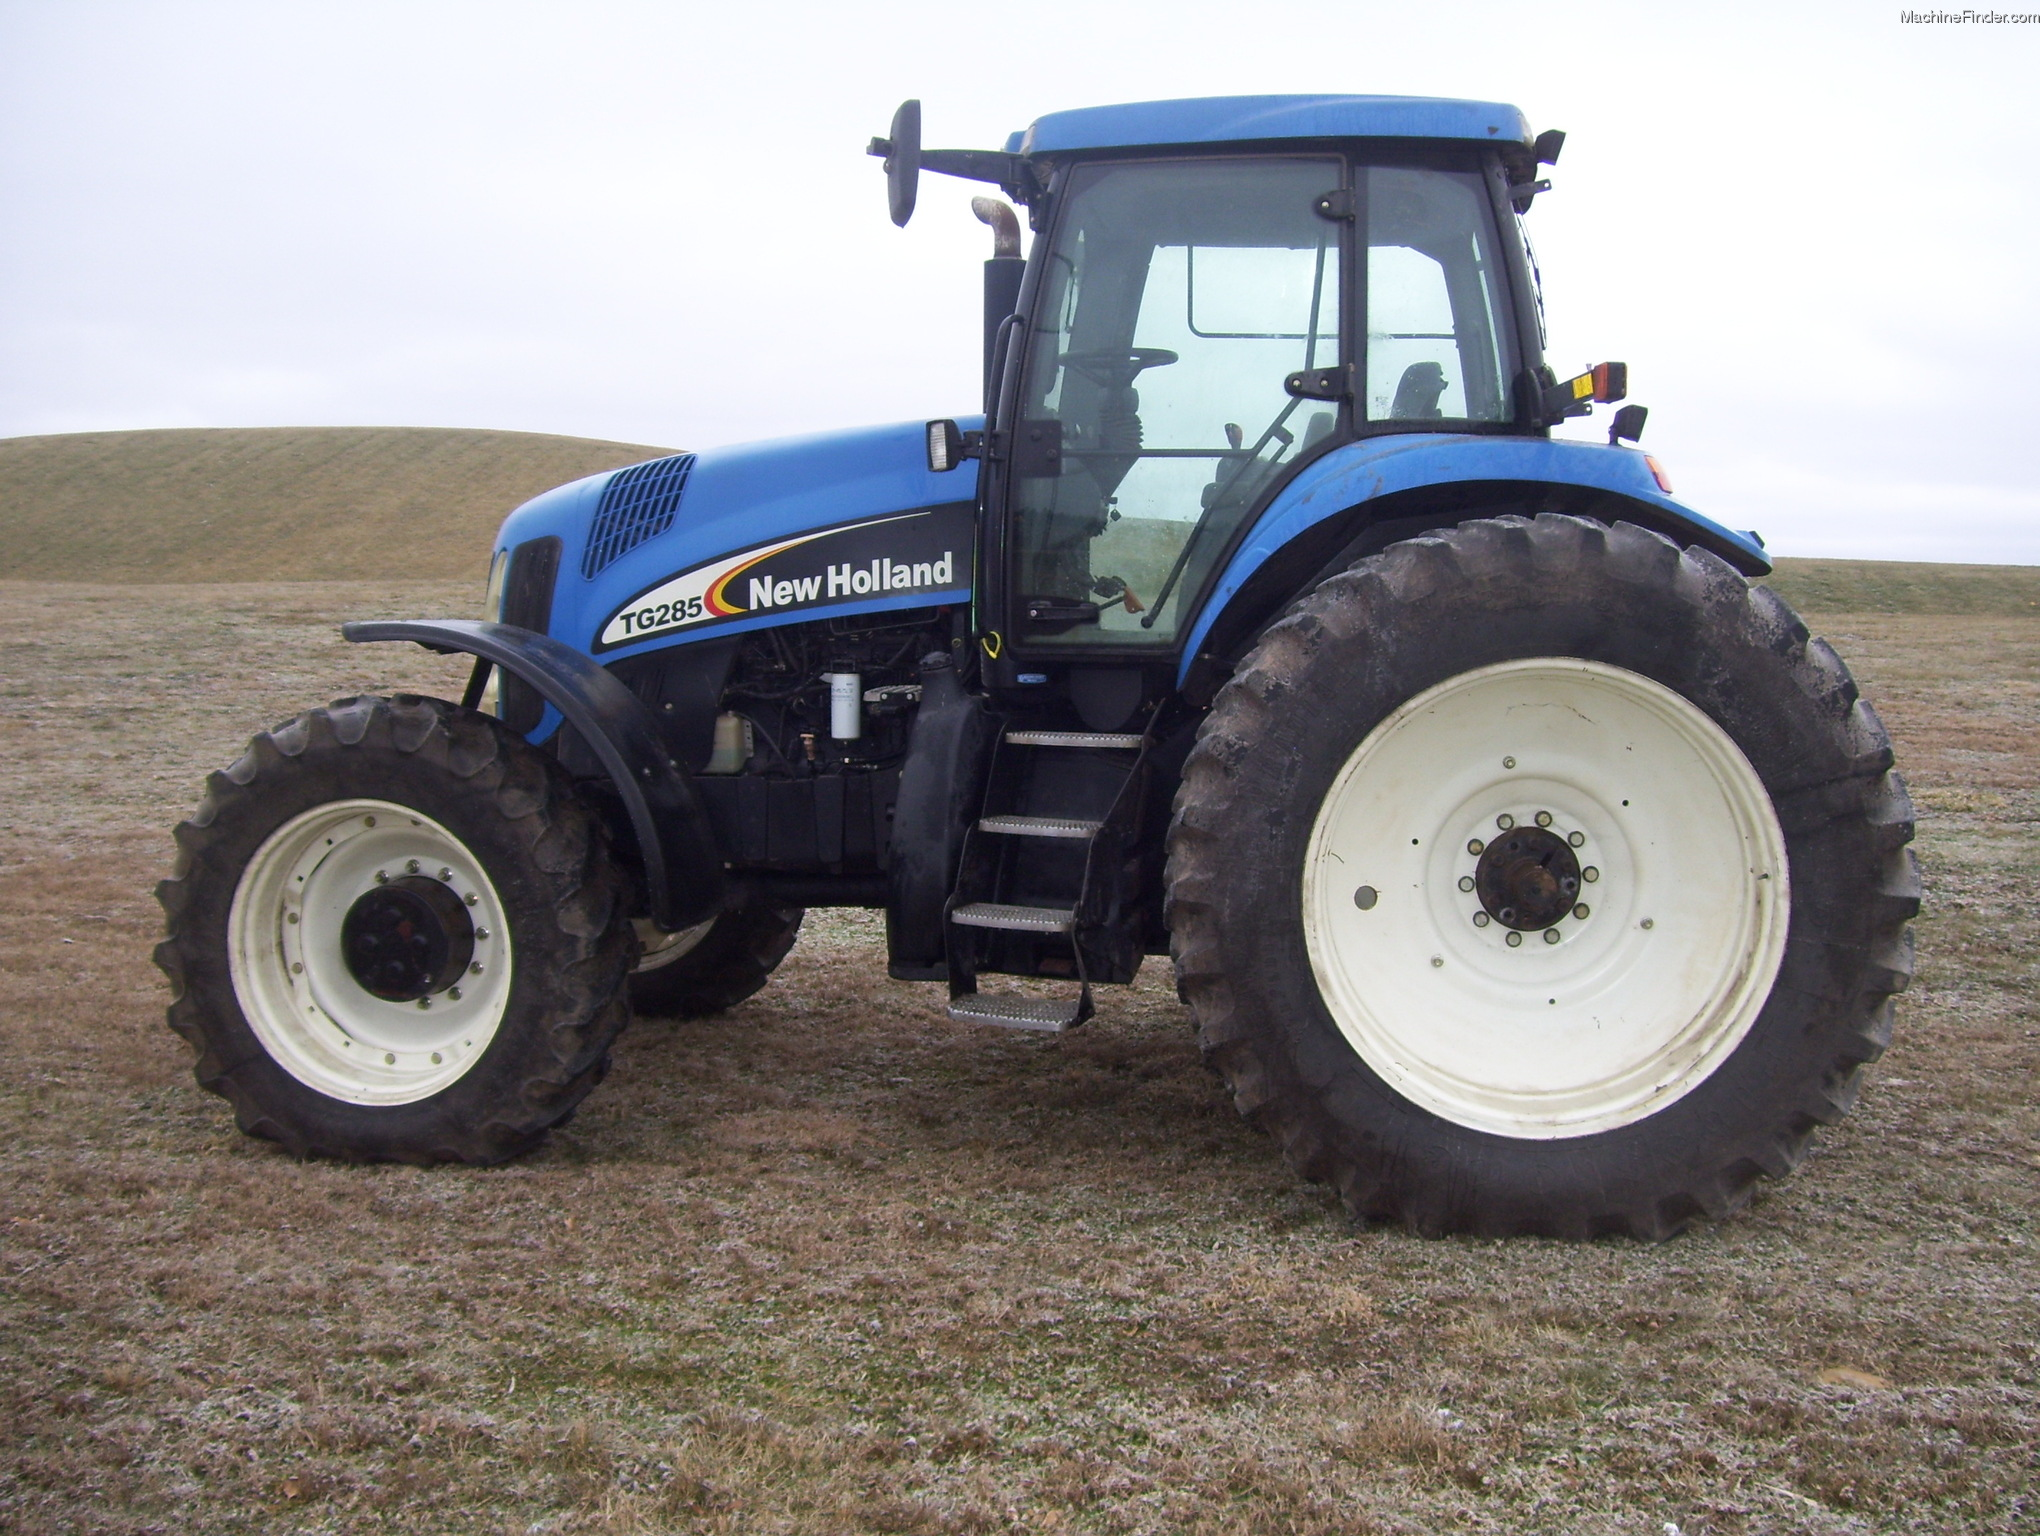 New holland tg285 photo - 2